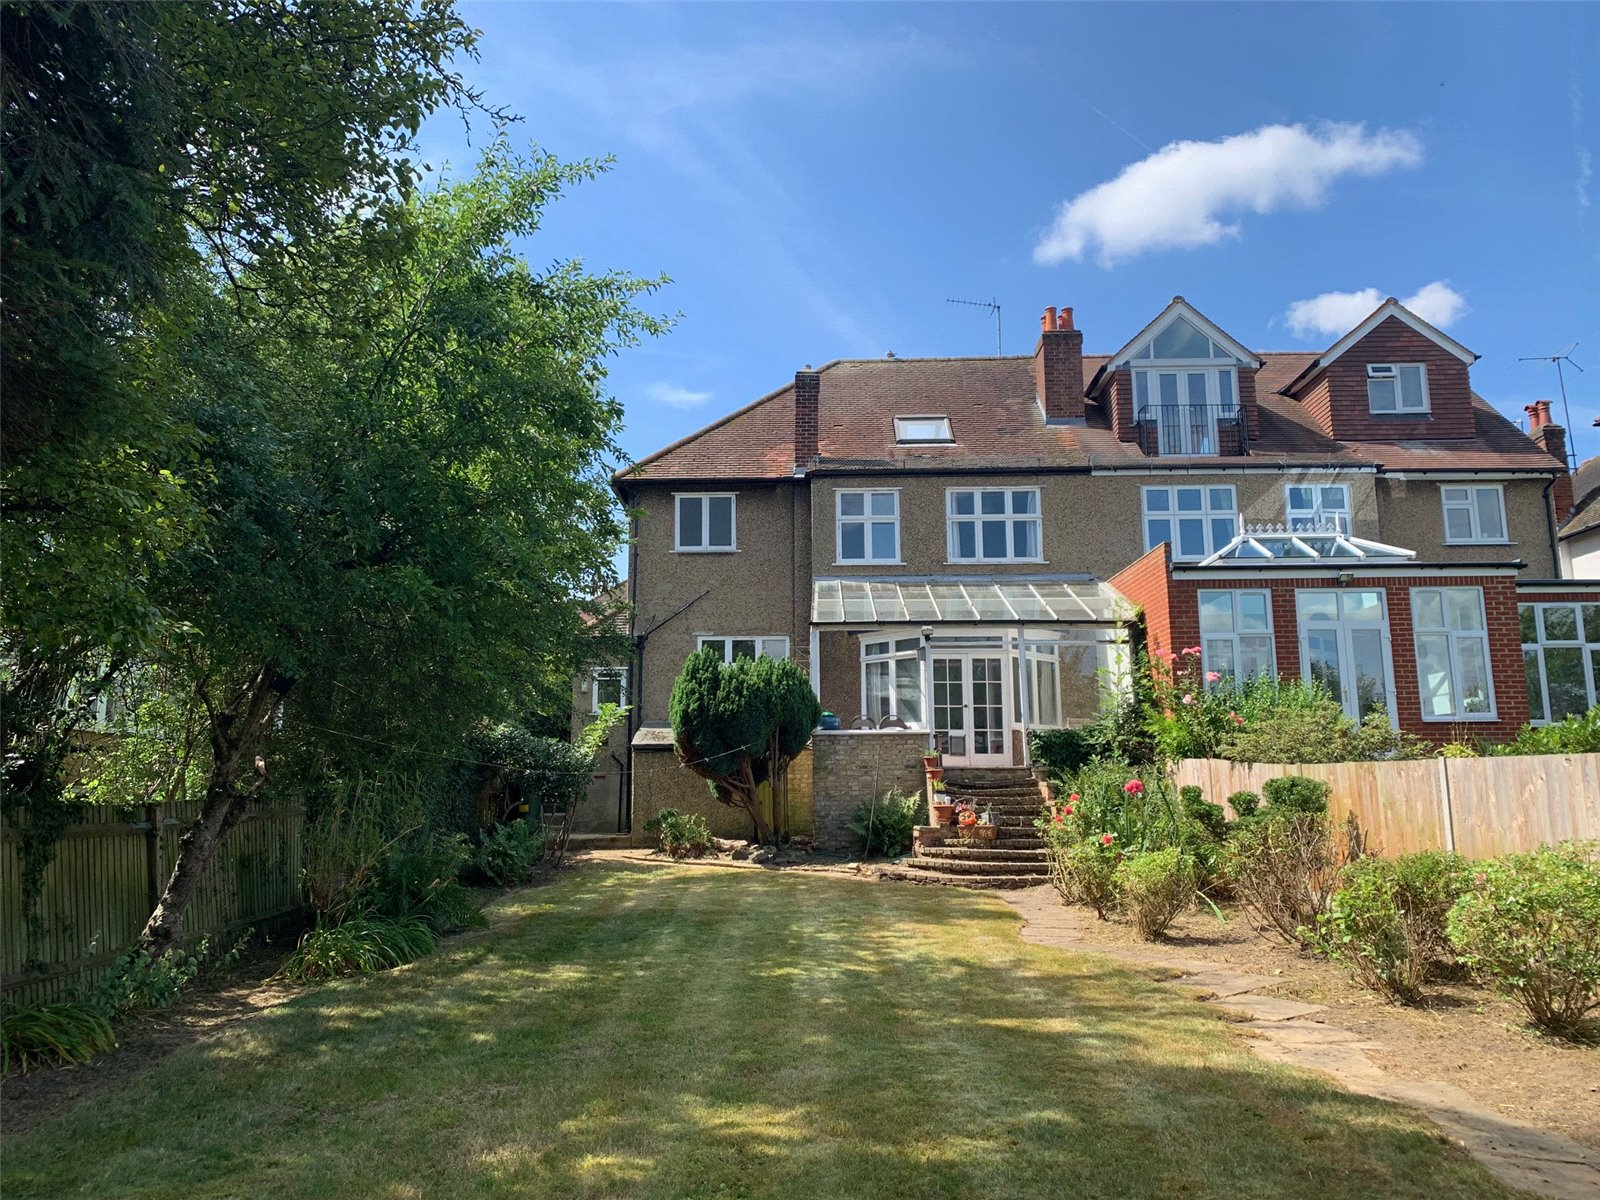 4 bed house for sale in Totteridge, N20 8QR 3